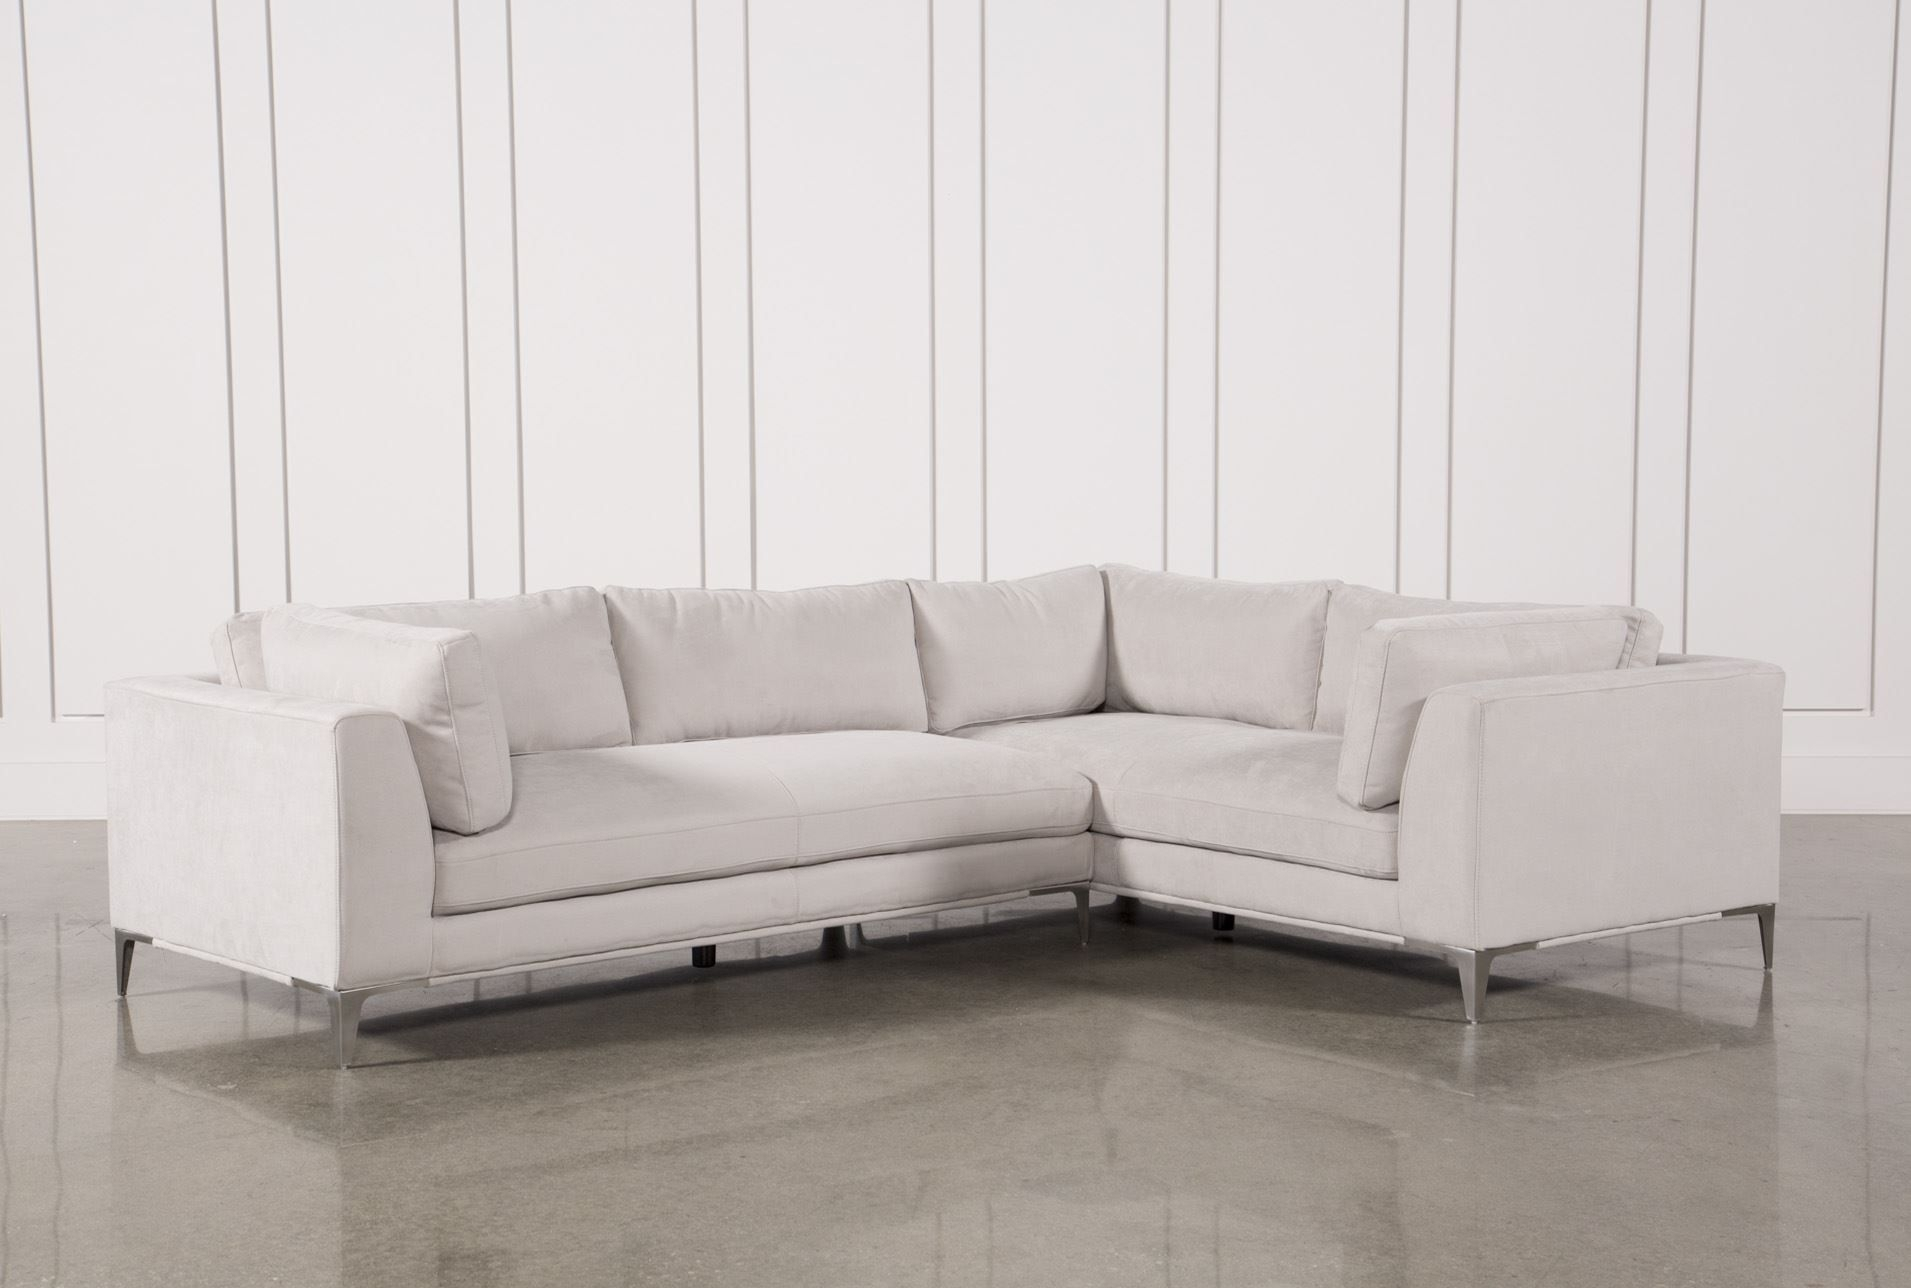 Apollo Light Grey 2 Piece Sectional | Living Space | Pinterest Pertaining To Cohen Down 2 Piece Sectionals (View 4 of 25)